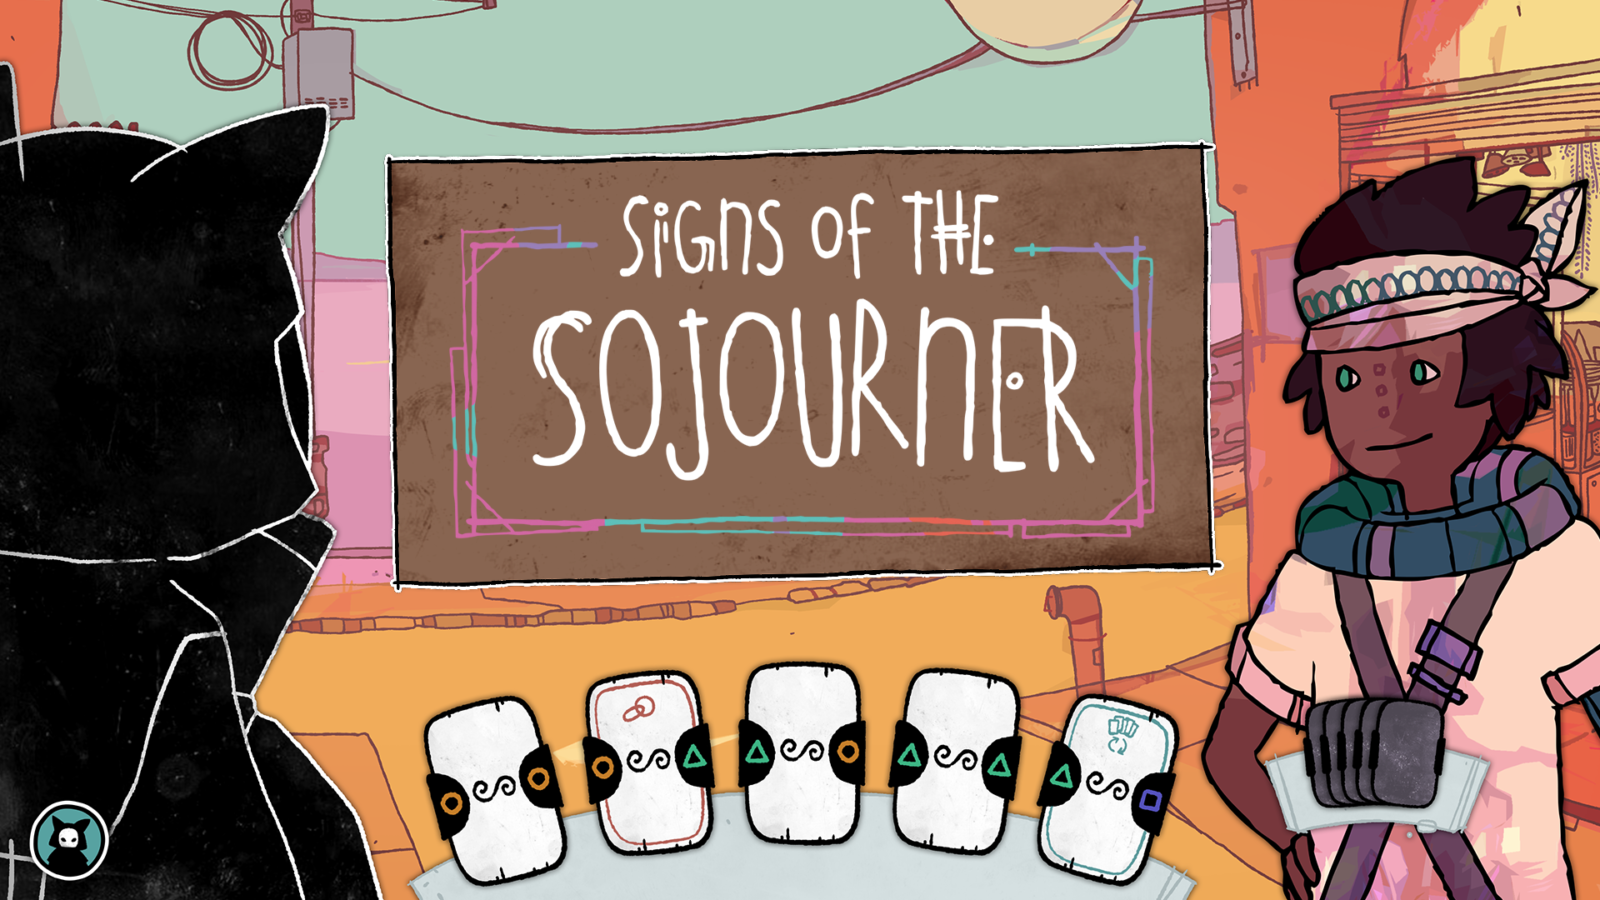 Signs of the Sojourner